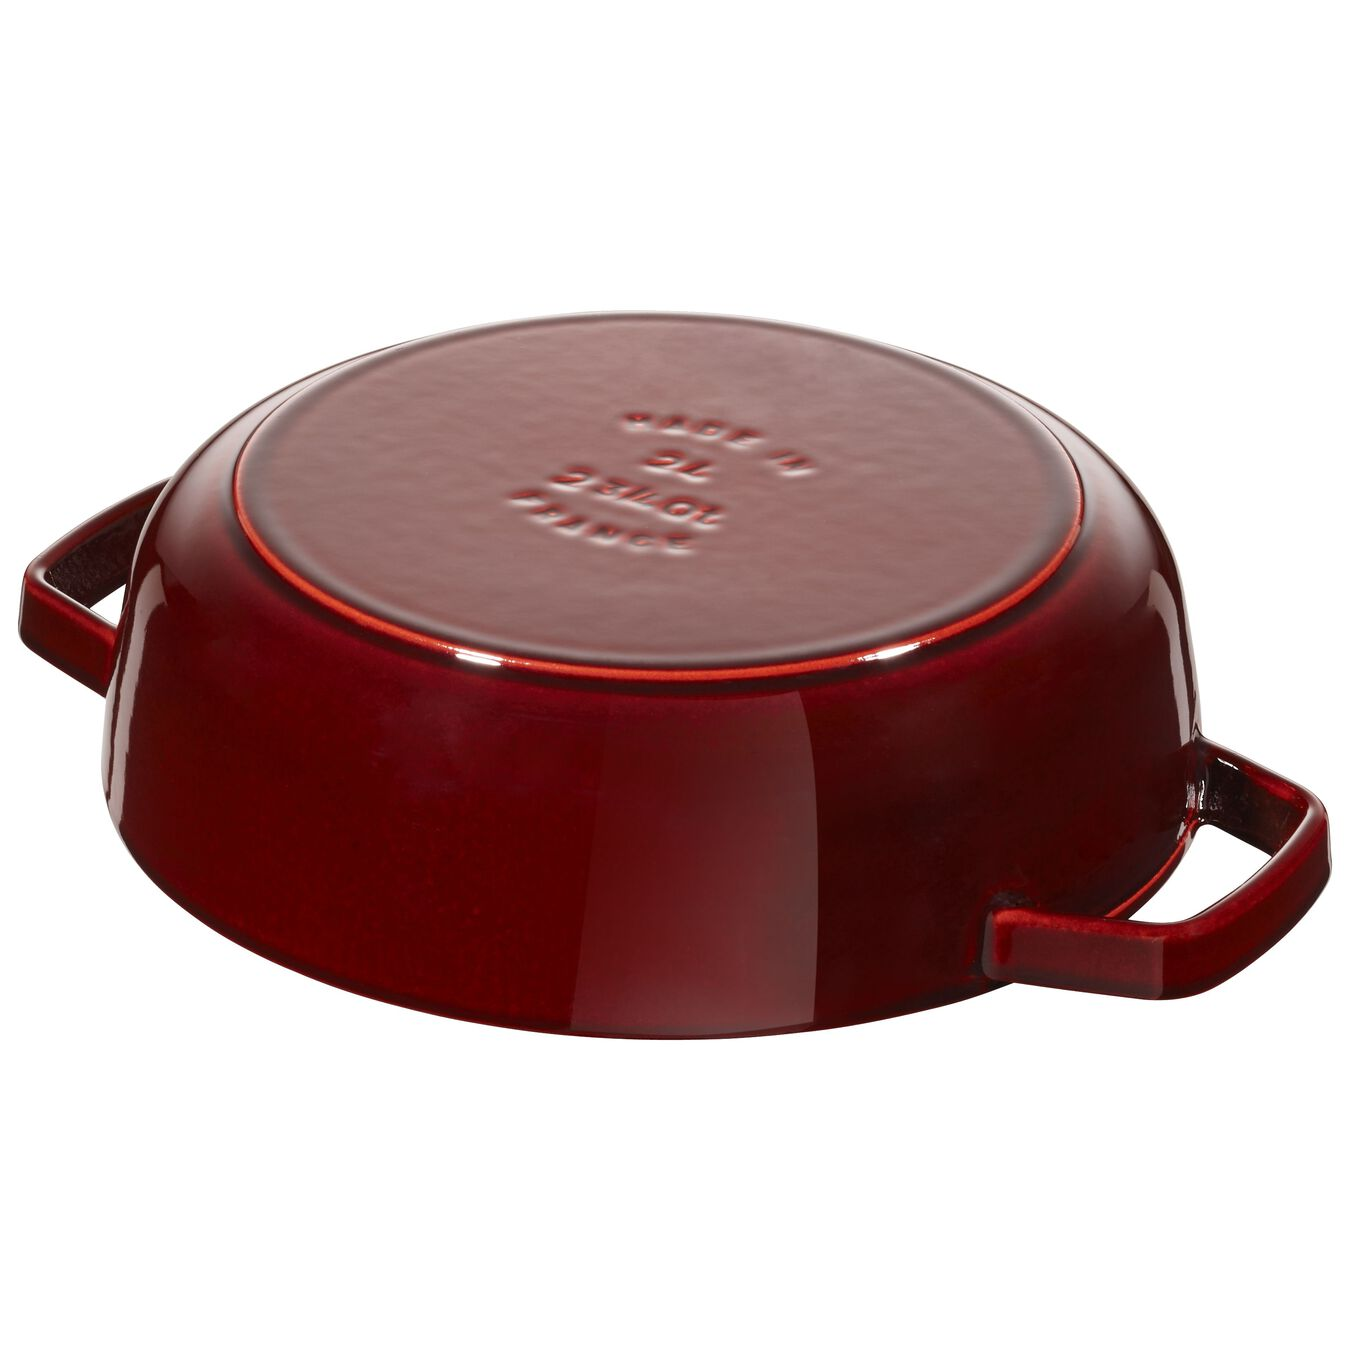 2.5 l Cast iron round Saute pan Chistera, Grenadine-Red,,large 3